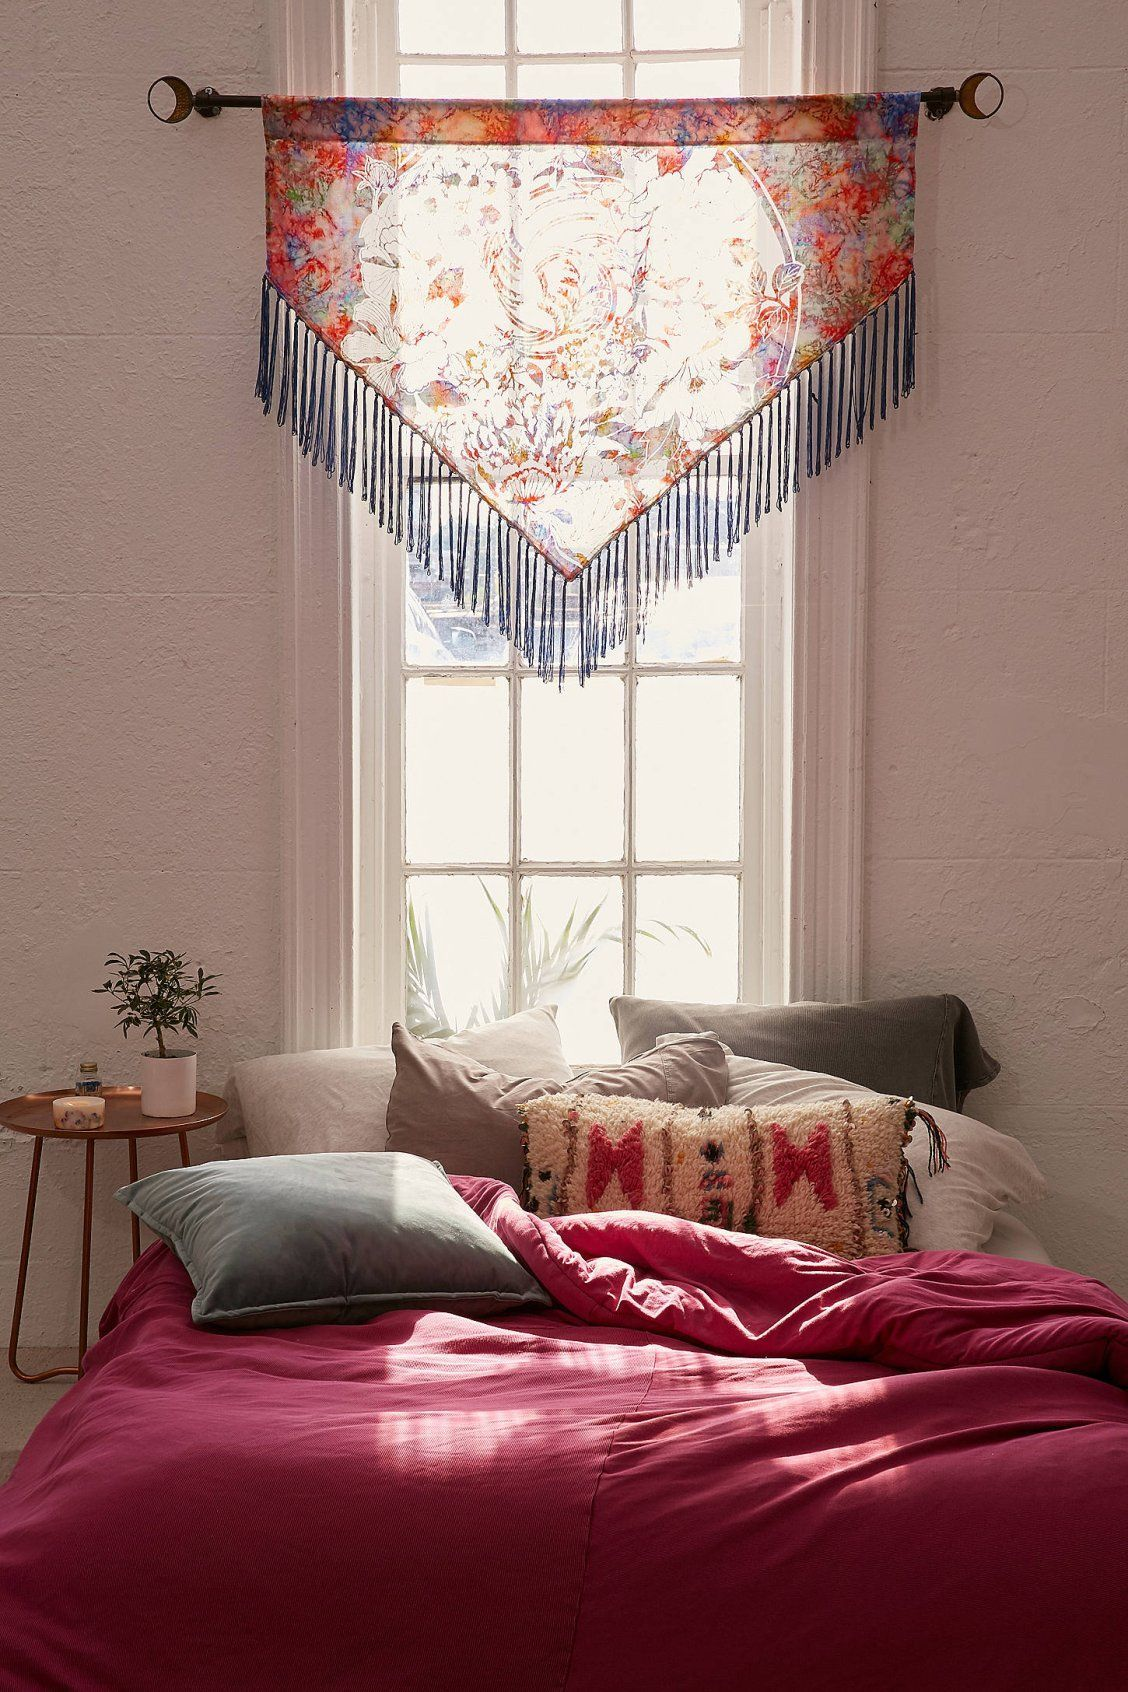 Bed under window ideas  sia burnout velvet window valance  urban outfitters  easy home